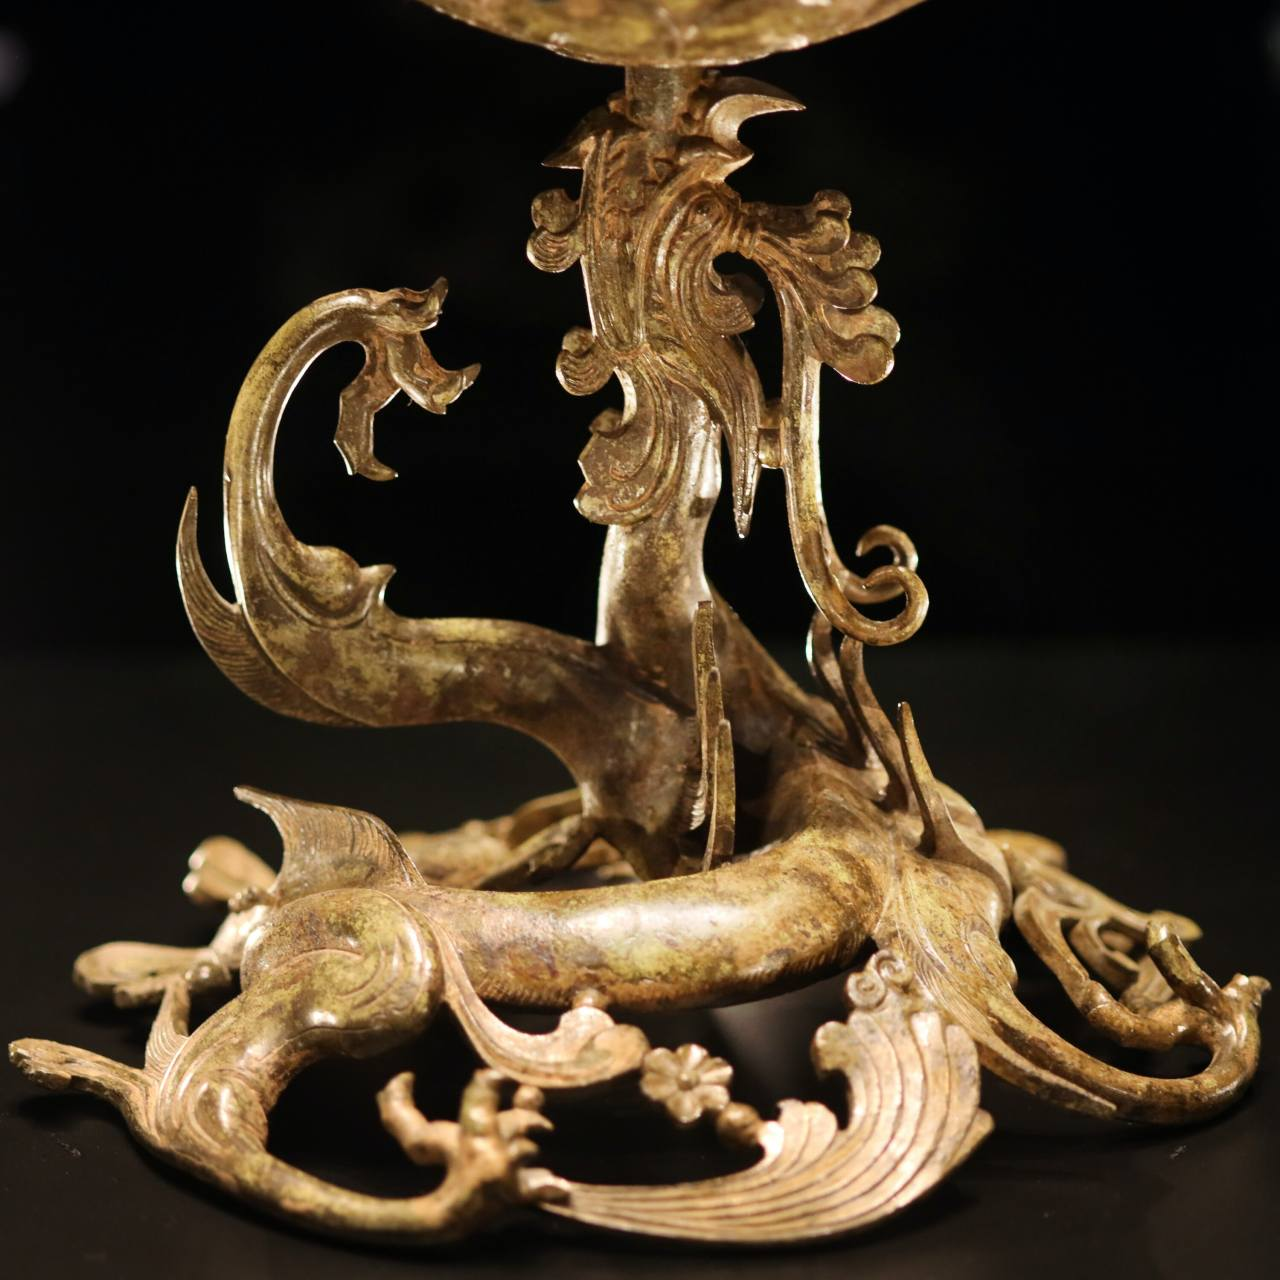 The water, symbolizing life, is expressed as a dragon on the base of the Gilt-bronze Incense Burner of Baekje. The lotus flower base blooms from the mouth of the five-legged dragon, whose legs appear like splashing waves.Photo © 2020 Hyungwon Kang